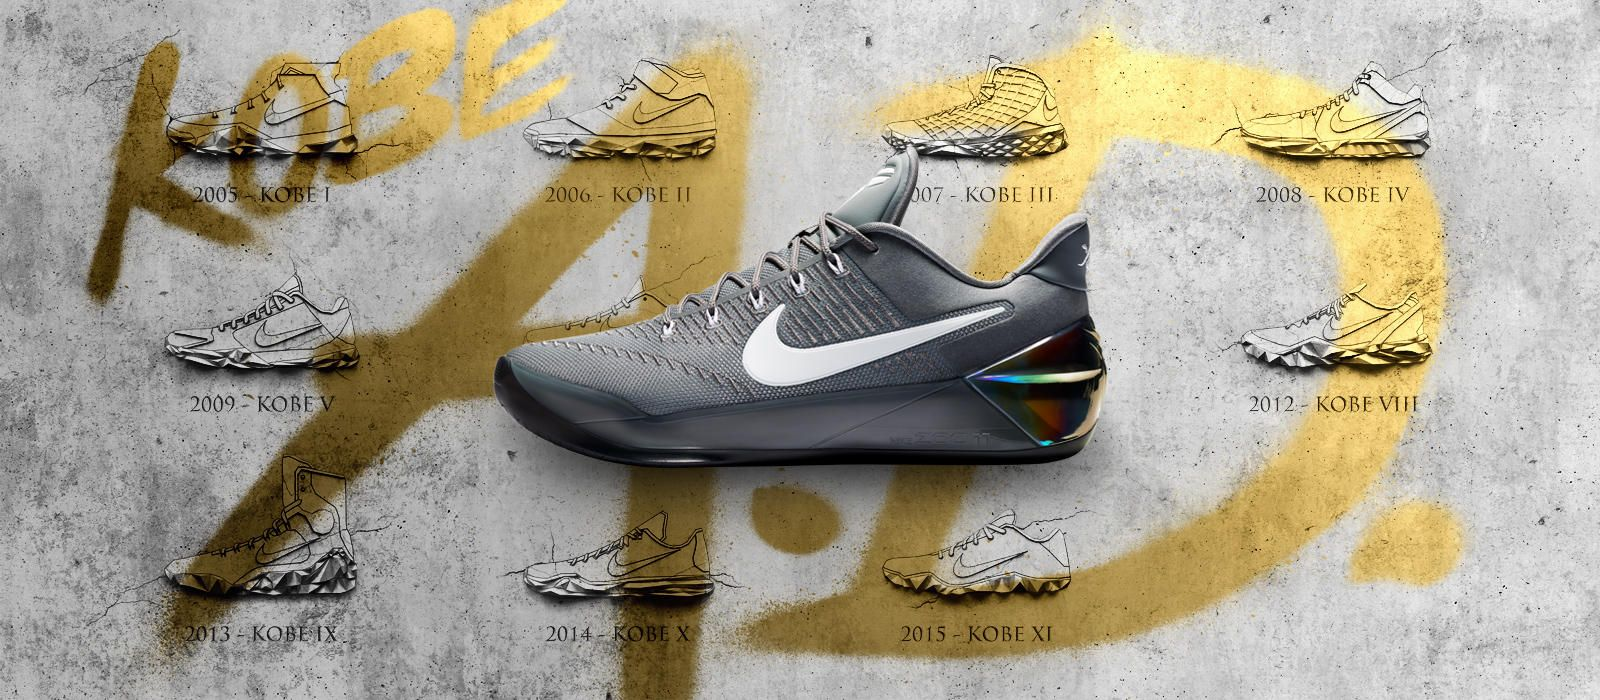 7e6e5dca905b Nike News - Introducing the Kobe A.D.